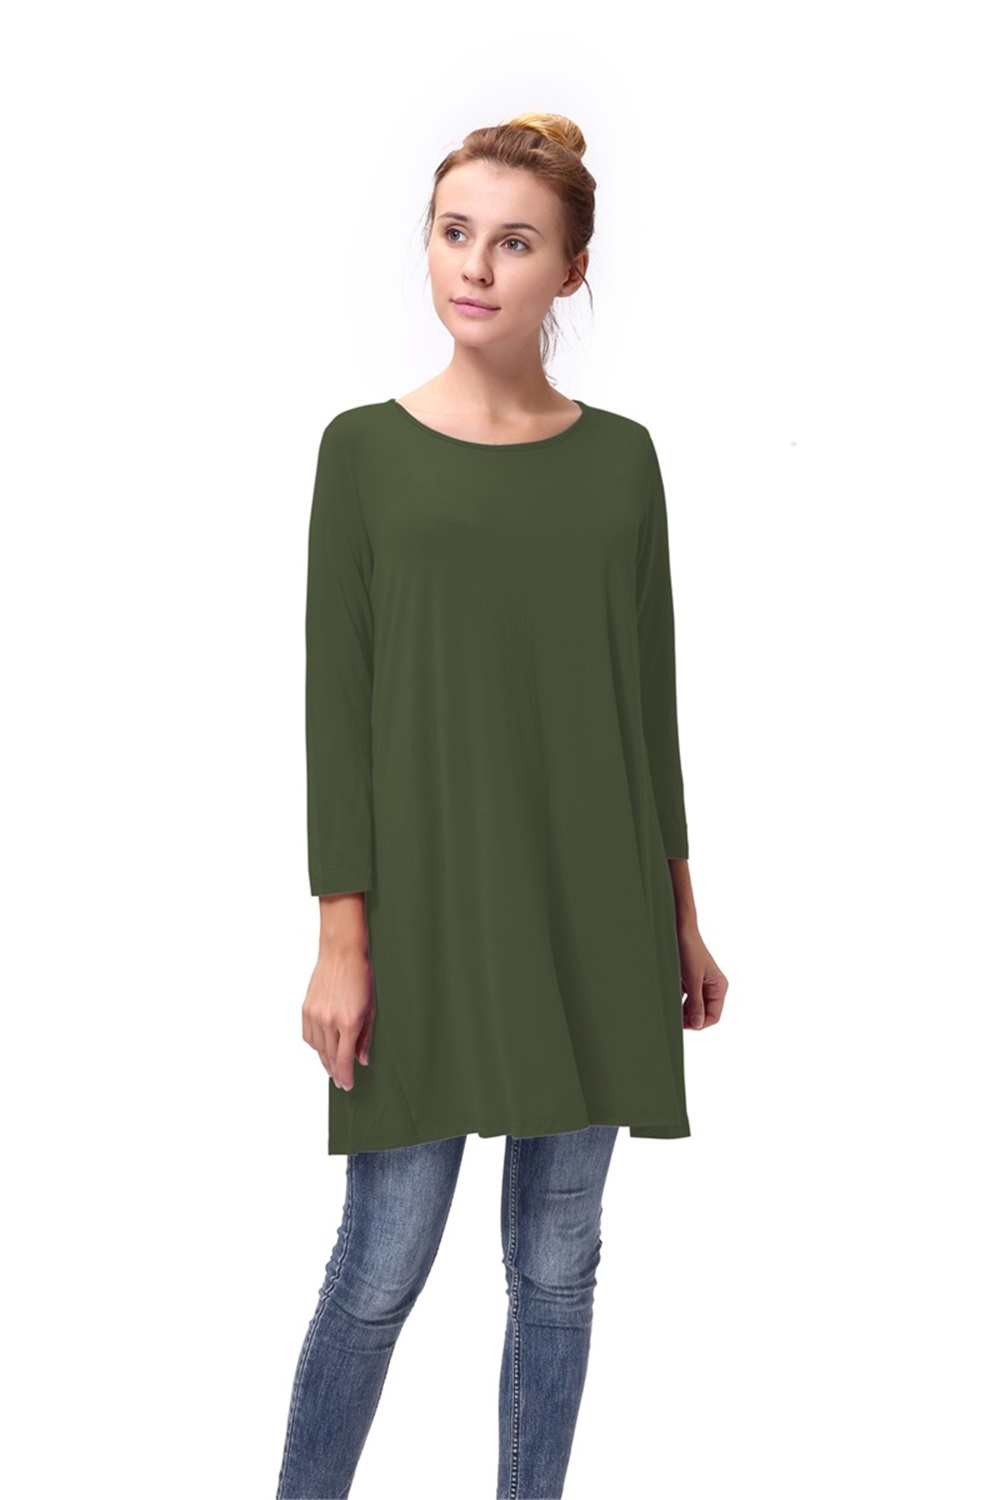 Women-039-s-Long-Tunic-Top-3-4-Sleeve-Dolman-Boat-Neck-USA-Dress-S-M-L-1X-2X-3X-PLUS thumbnail 4